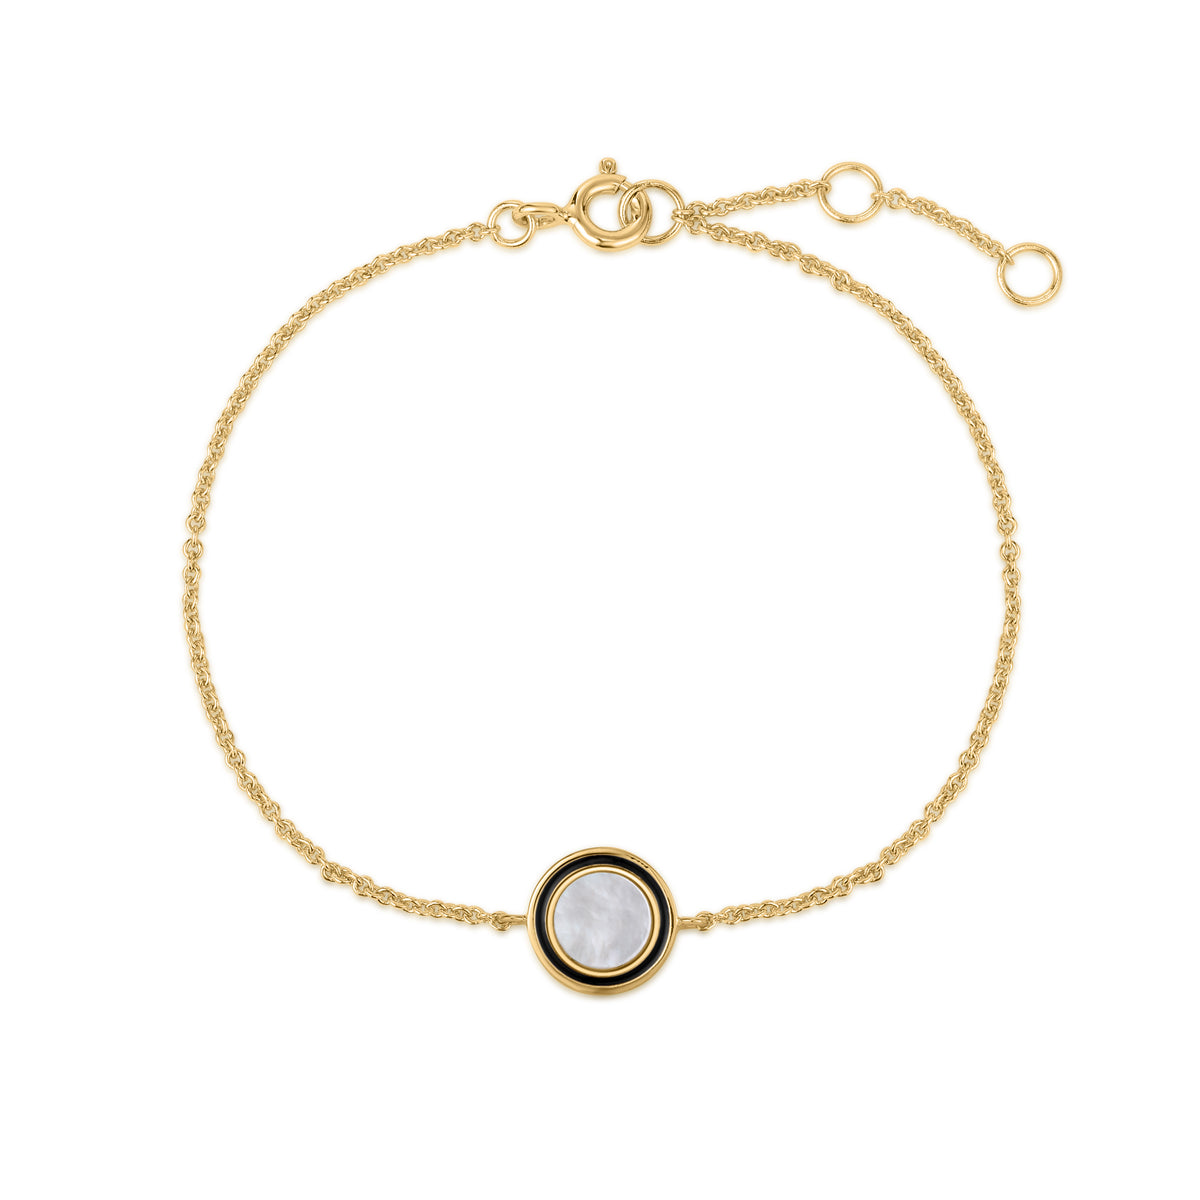 Cardea | Porcini Bracelet | 925 Silver | Black Enamel & Mother of Pearl | 14K Gold Plated